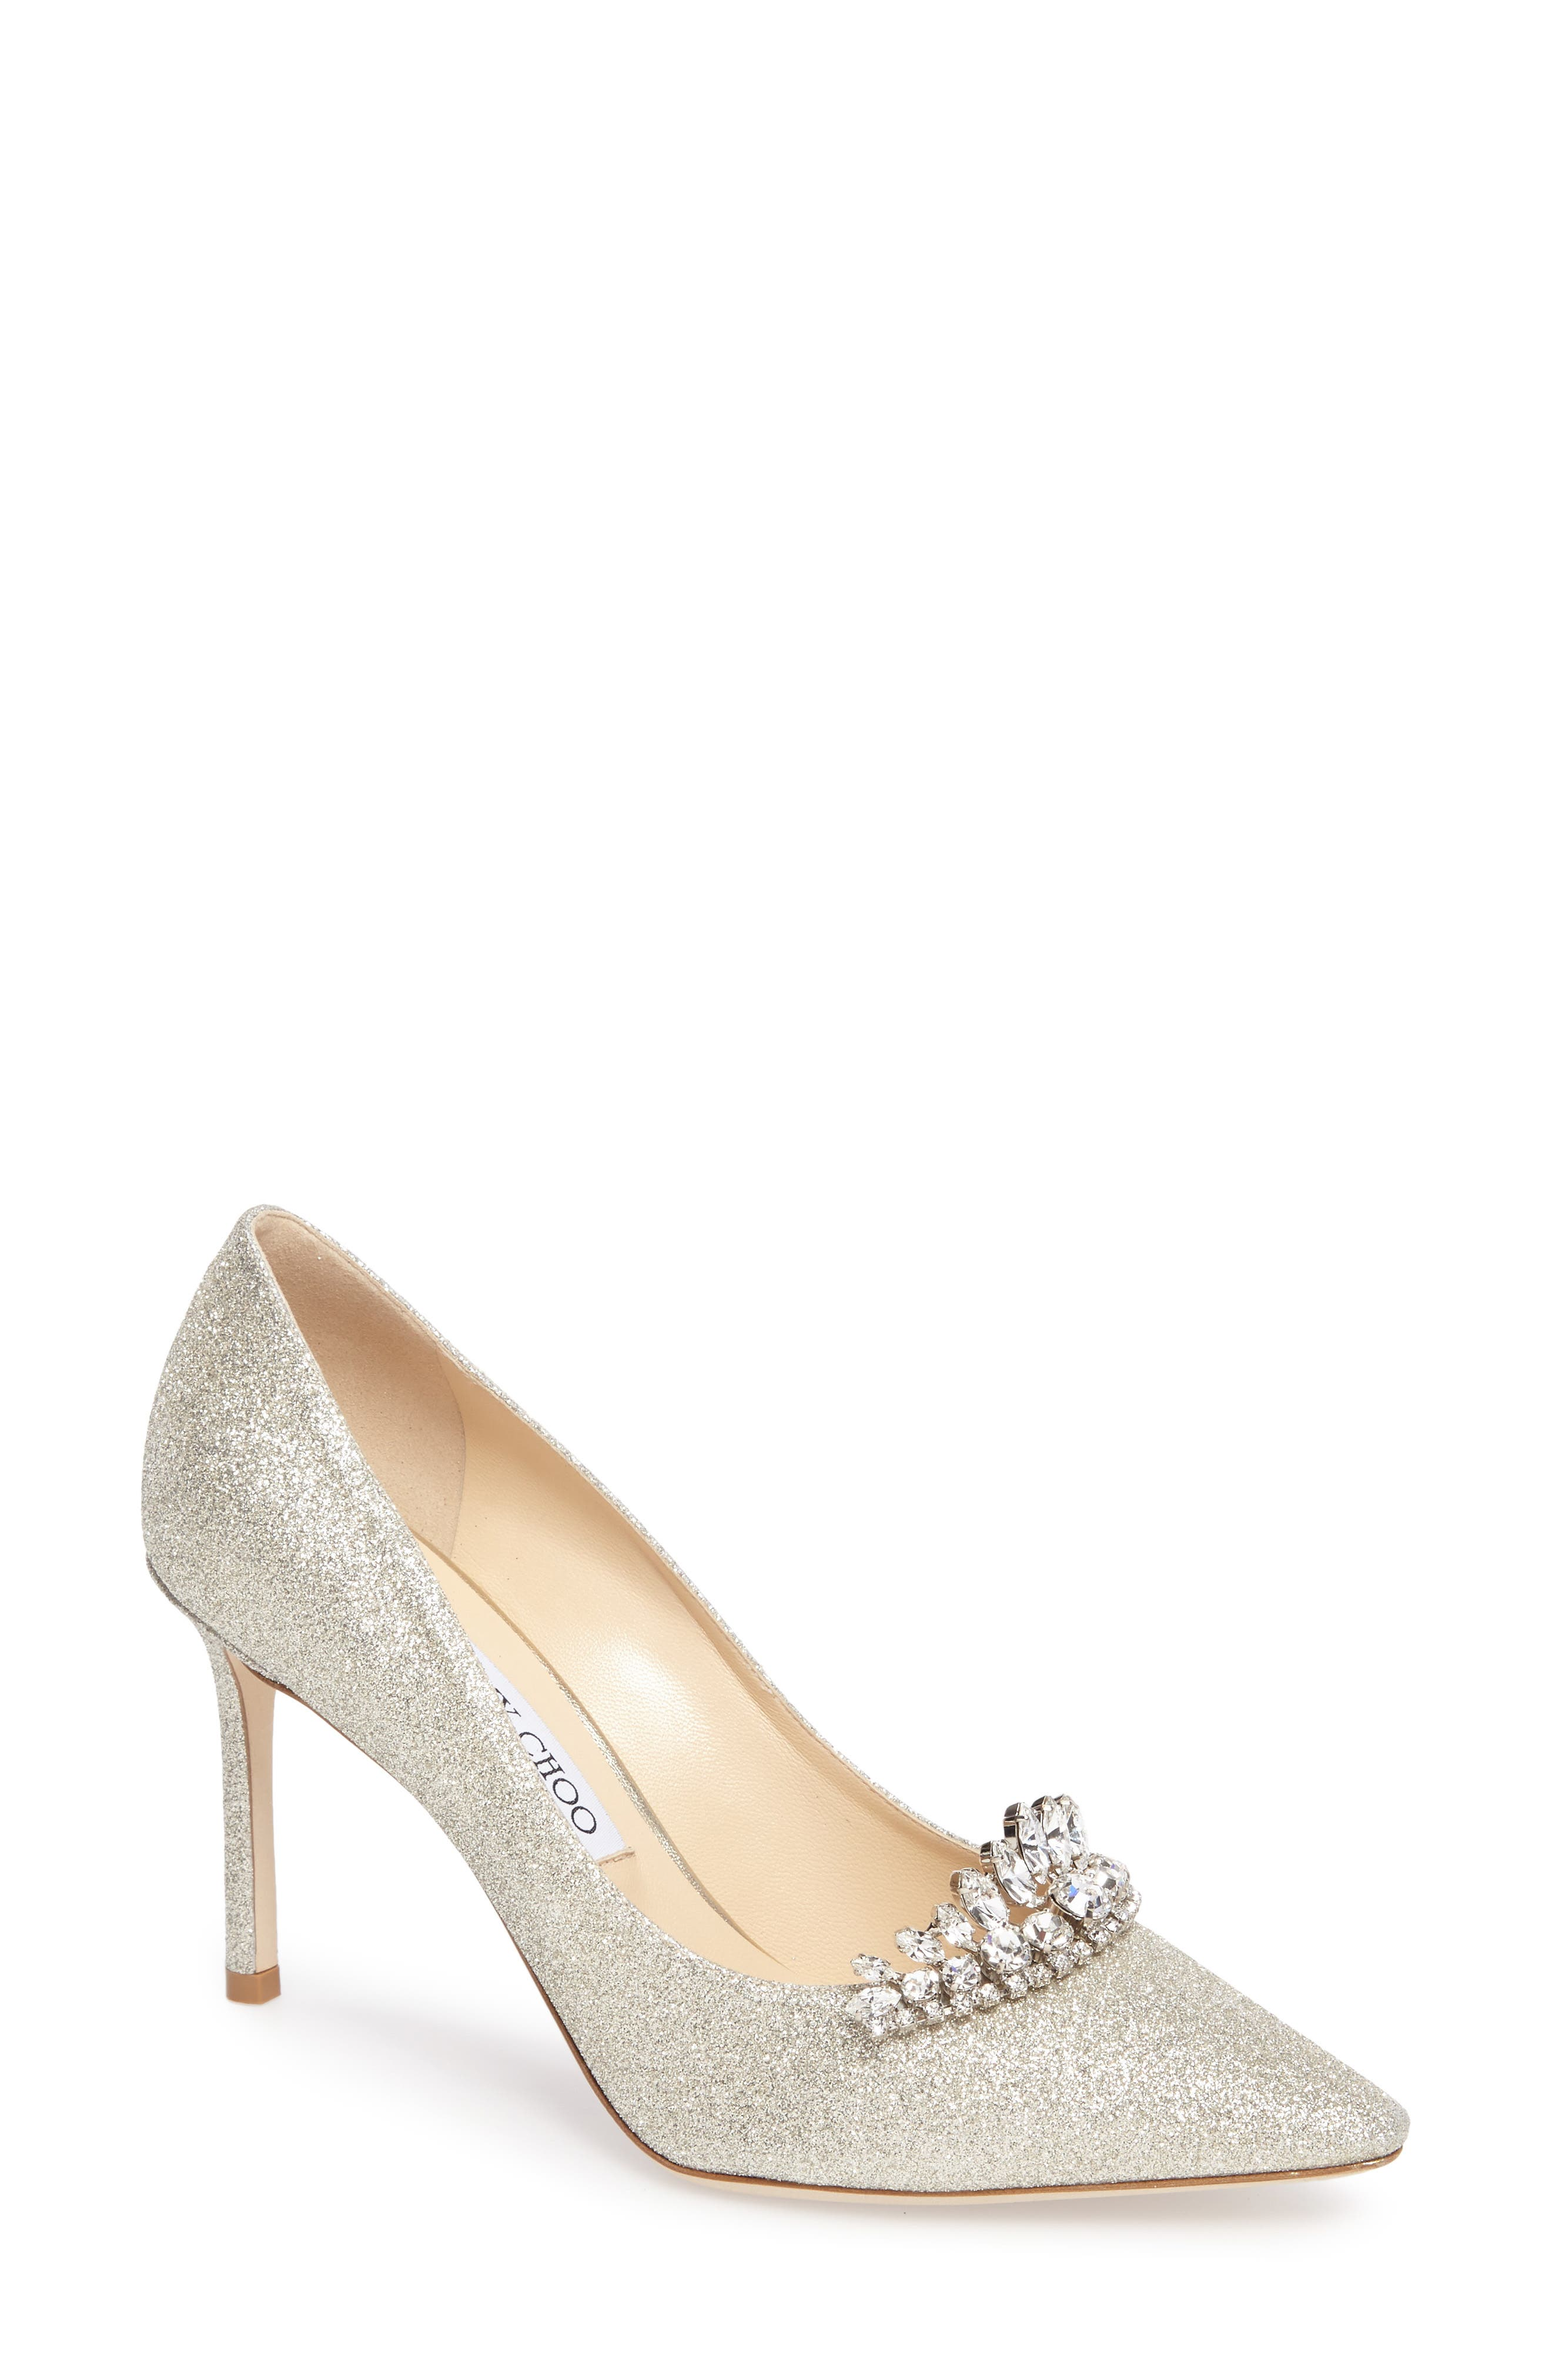 Romy Crystal Embellished Pump,                             Main thumbnail 1, color,                             Platinum Ice/ Crystal